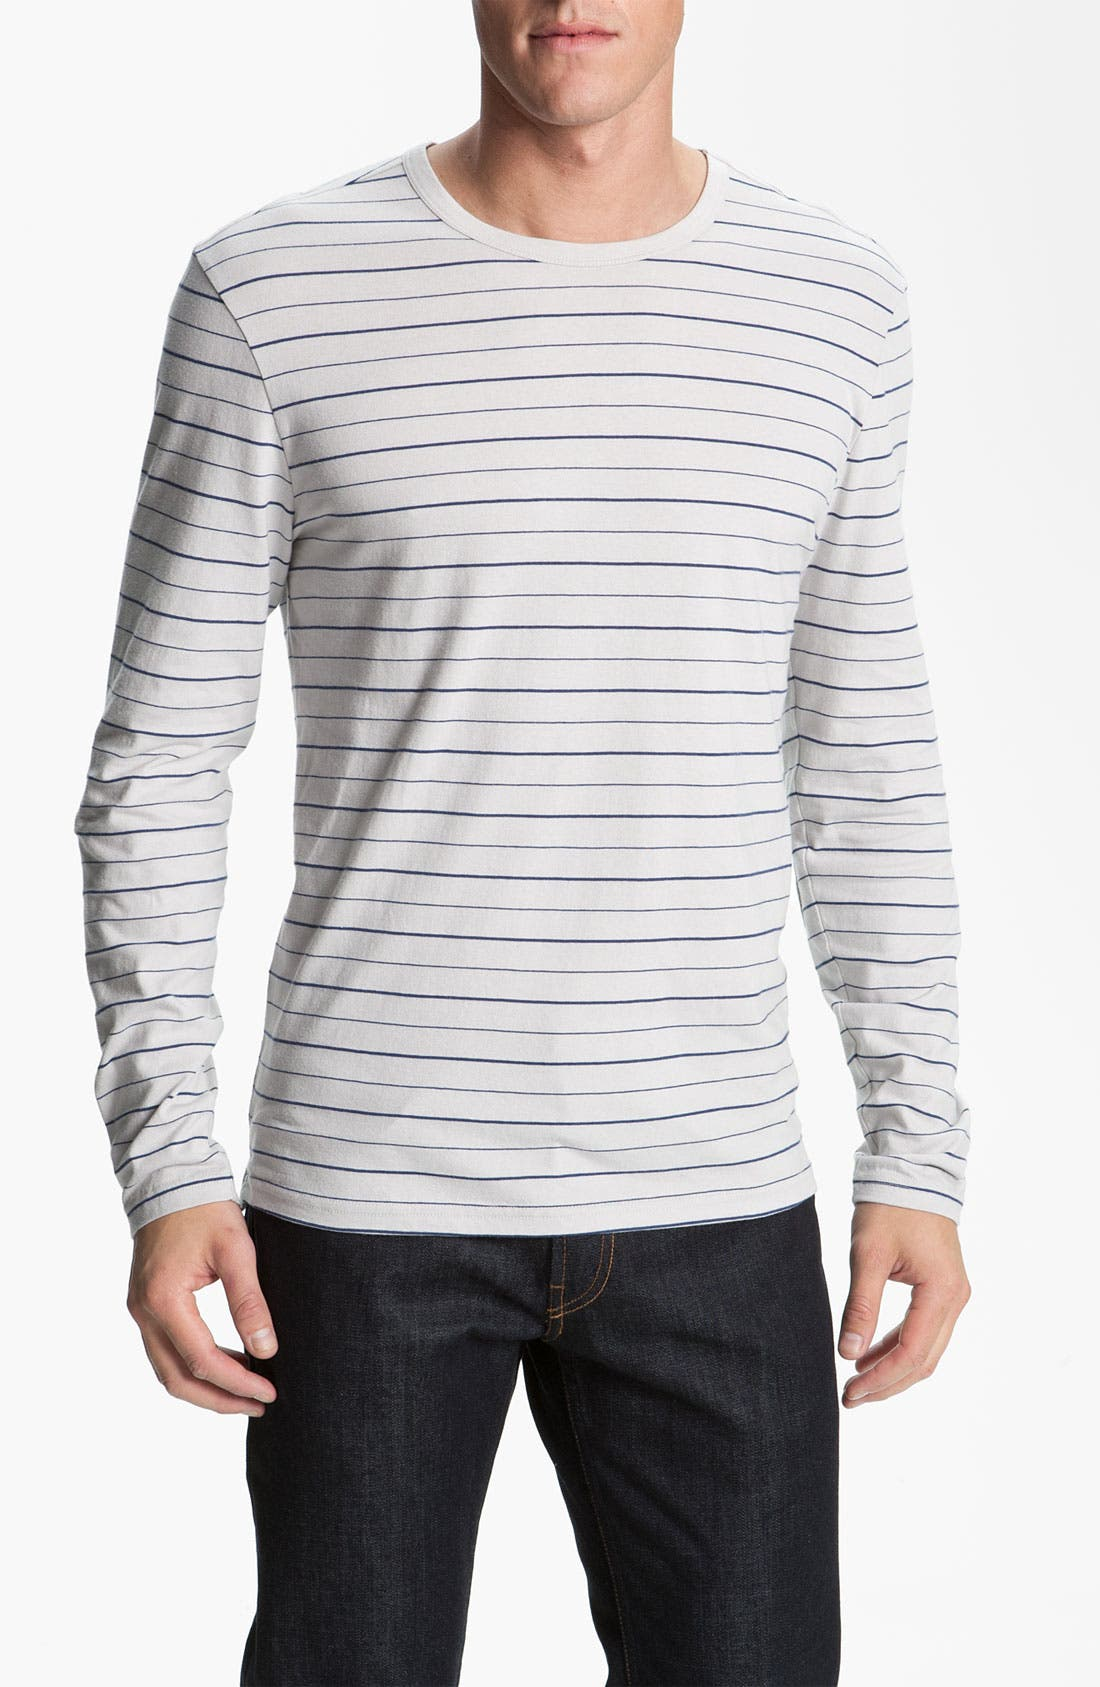 Main Image - 1901 Stripe Long Sleeve T-Shirt